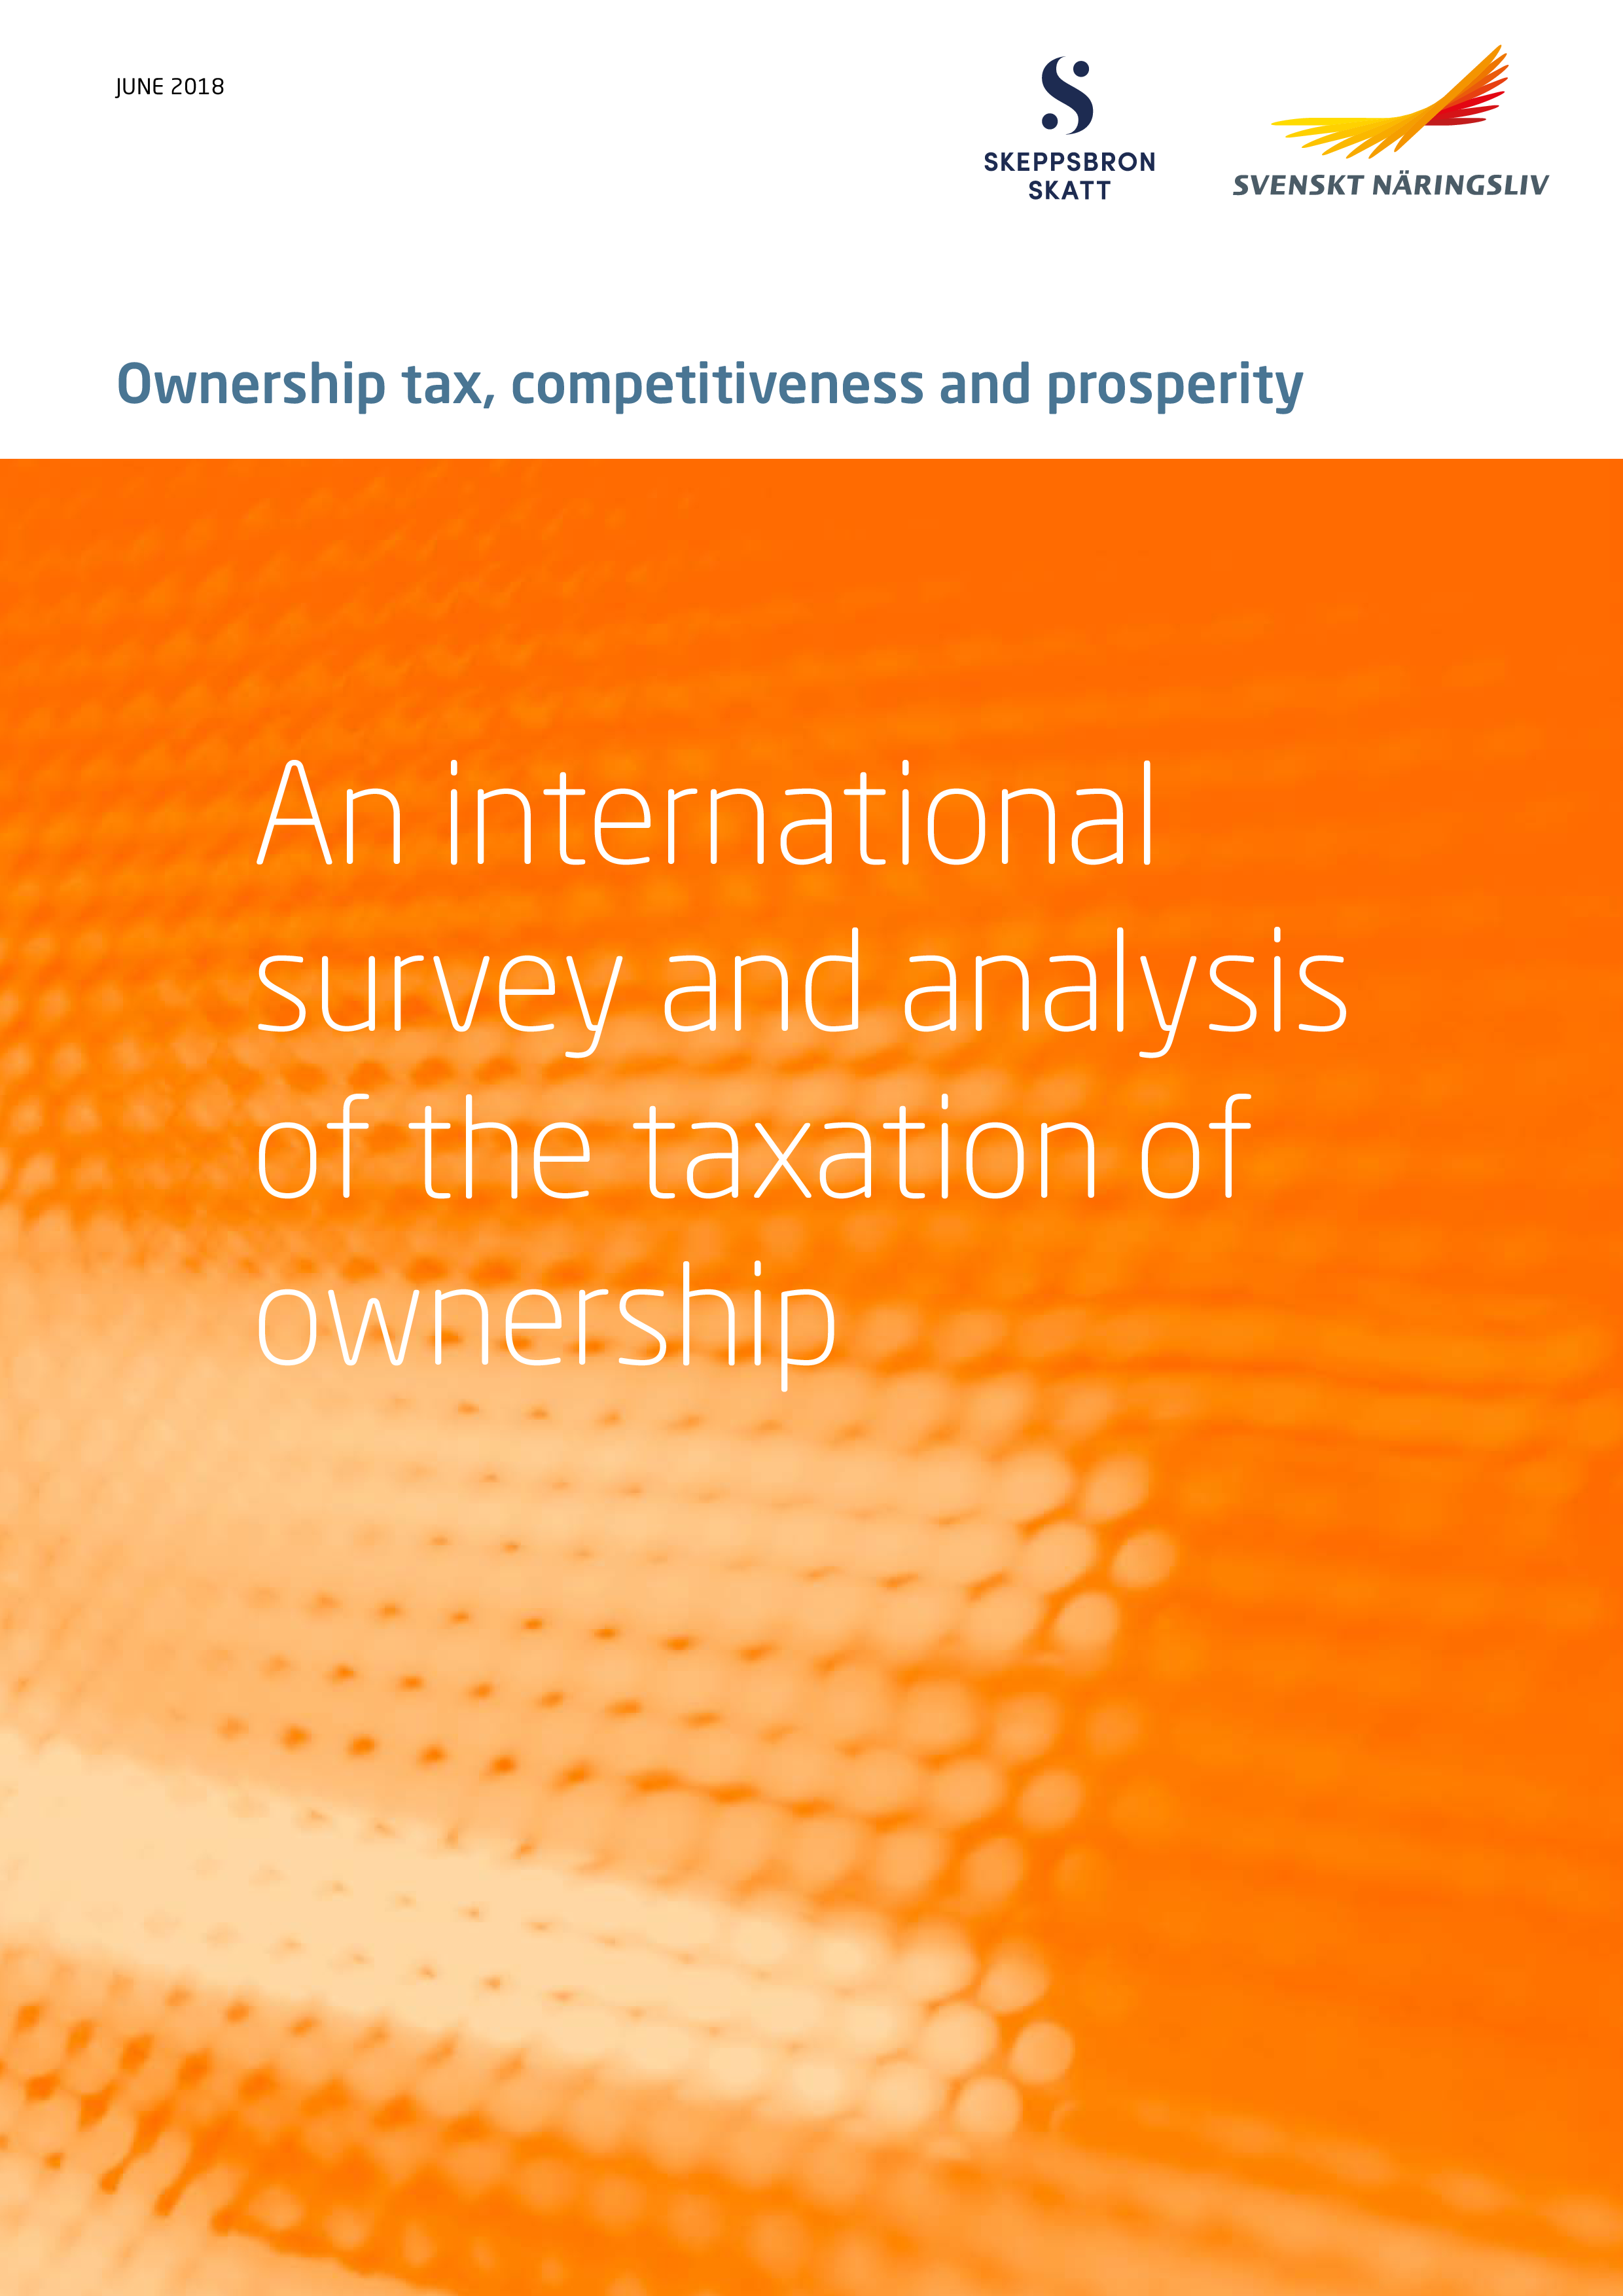 Ownership tax, competetiveness and prosperity - An international survey and analysis